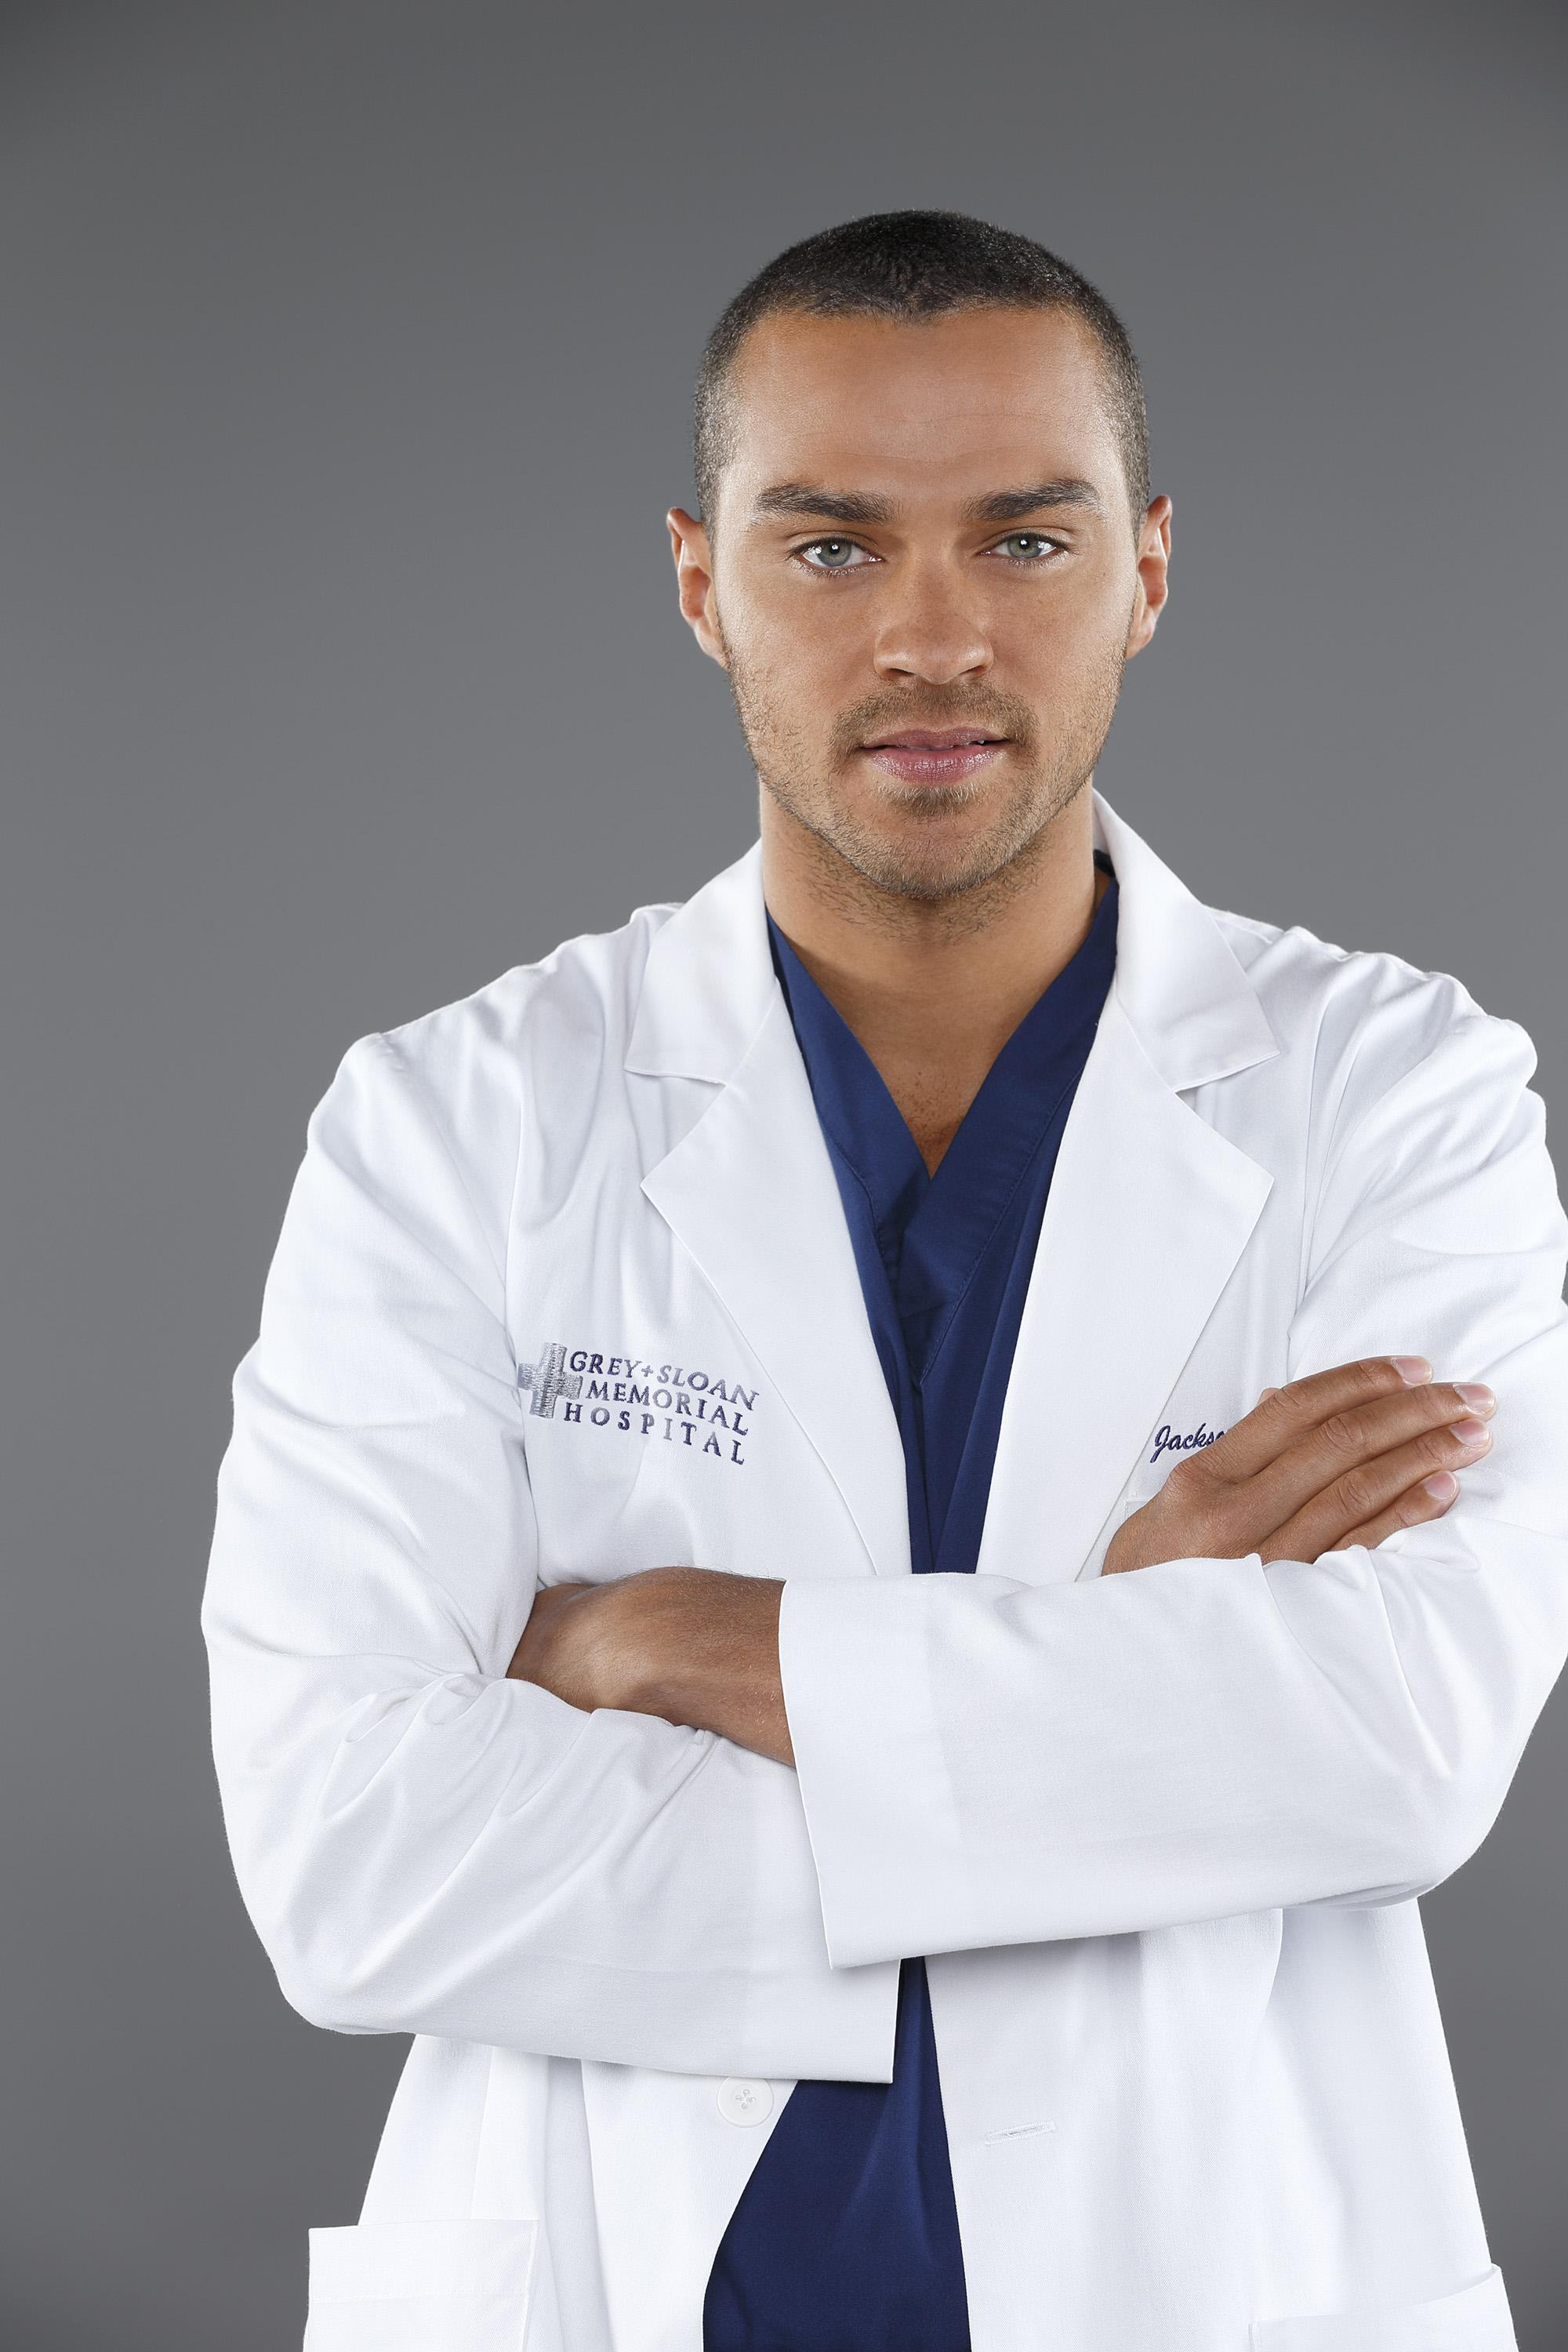 Greys-Anatomy-S10-Jesse-Williams-3-dvdbash | DVDbash